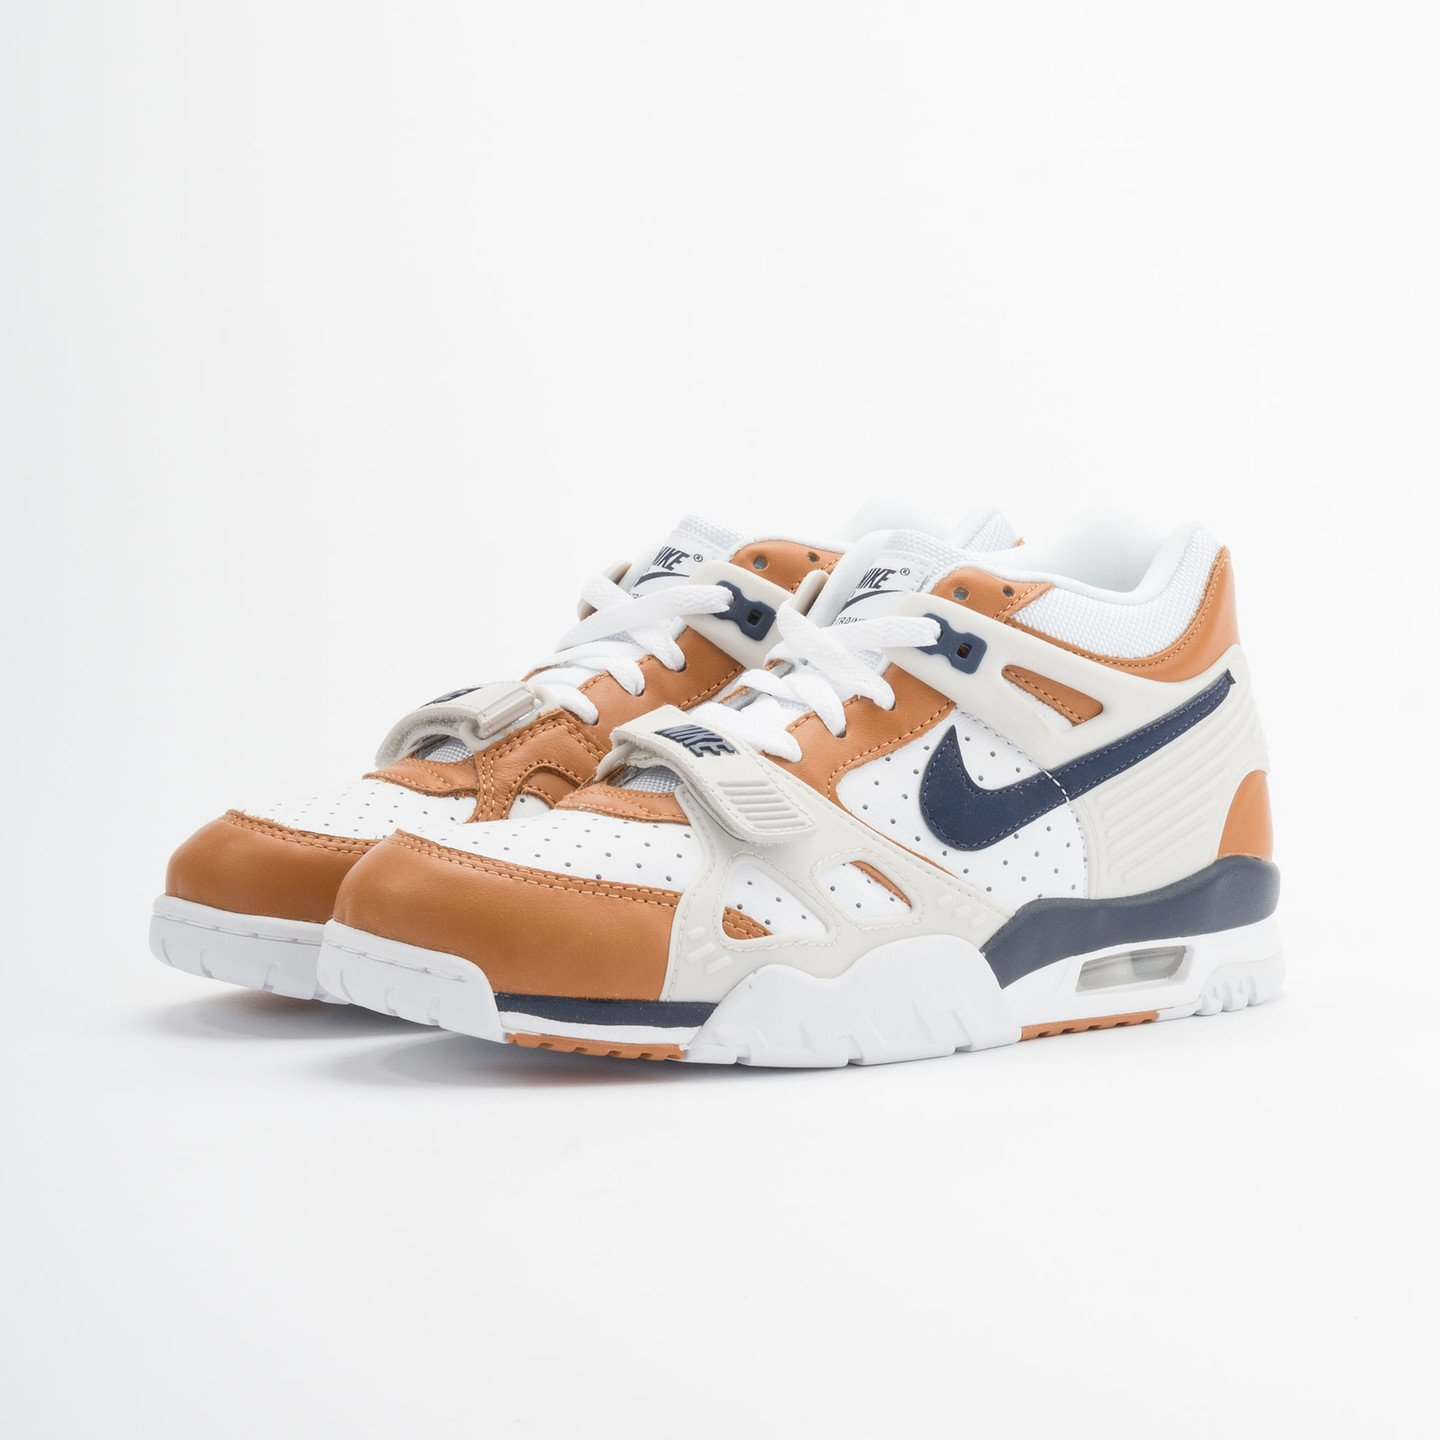 Nike Air Trainer 3 Premium Medicine Ball White/Mid Navy-Gngr-Lght Bn 705425-100-45.5